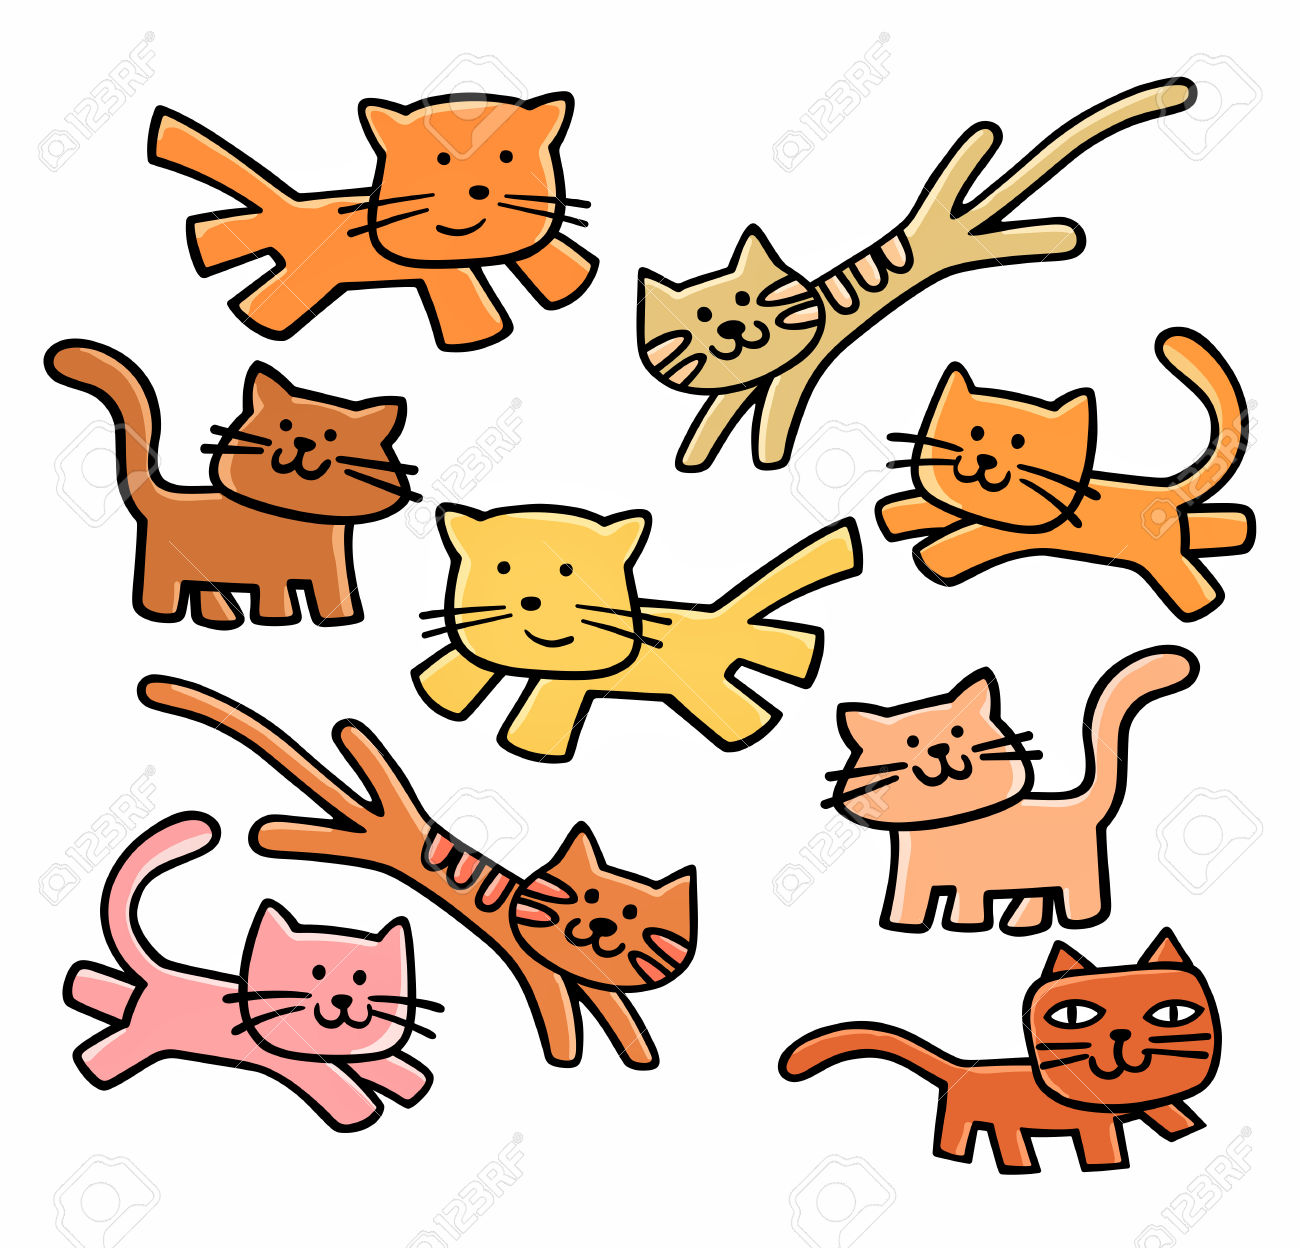 Cute Cats Clipart Royalty Free Cliparts, Vectors, And Stock.